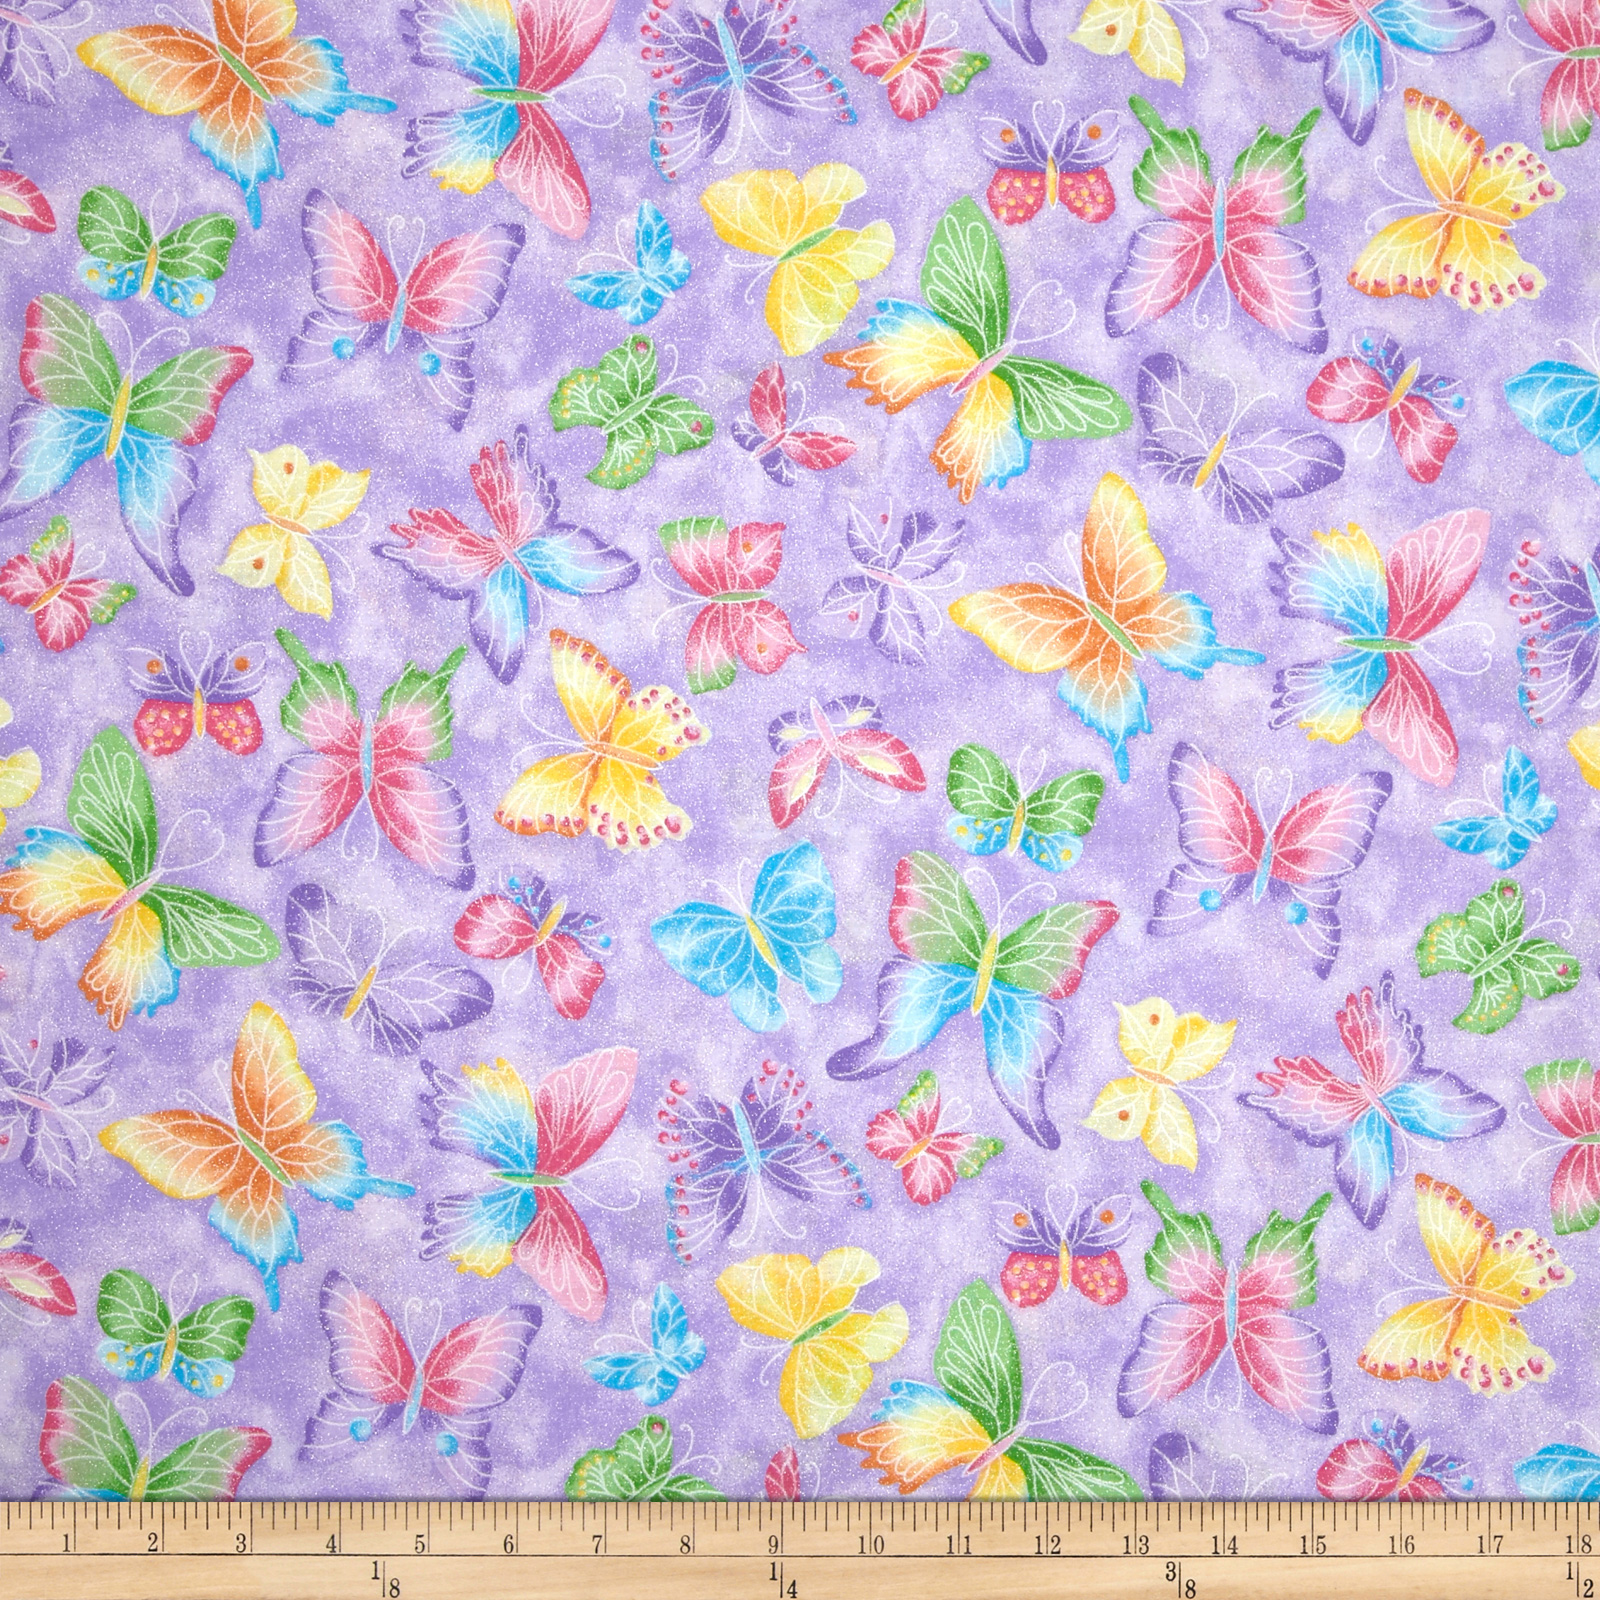 Butterflies Glitter Purple Fabric by Fabric Traditions in USA